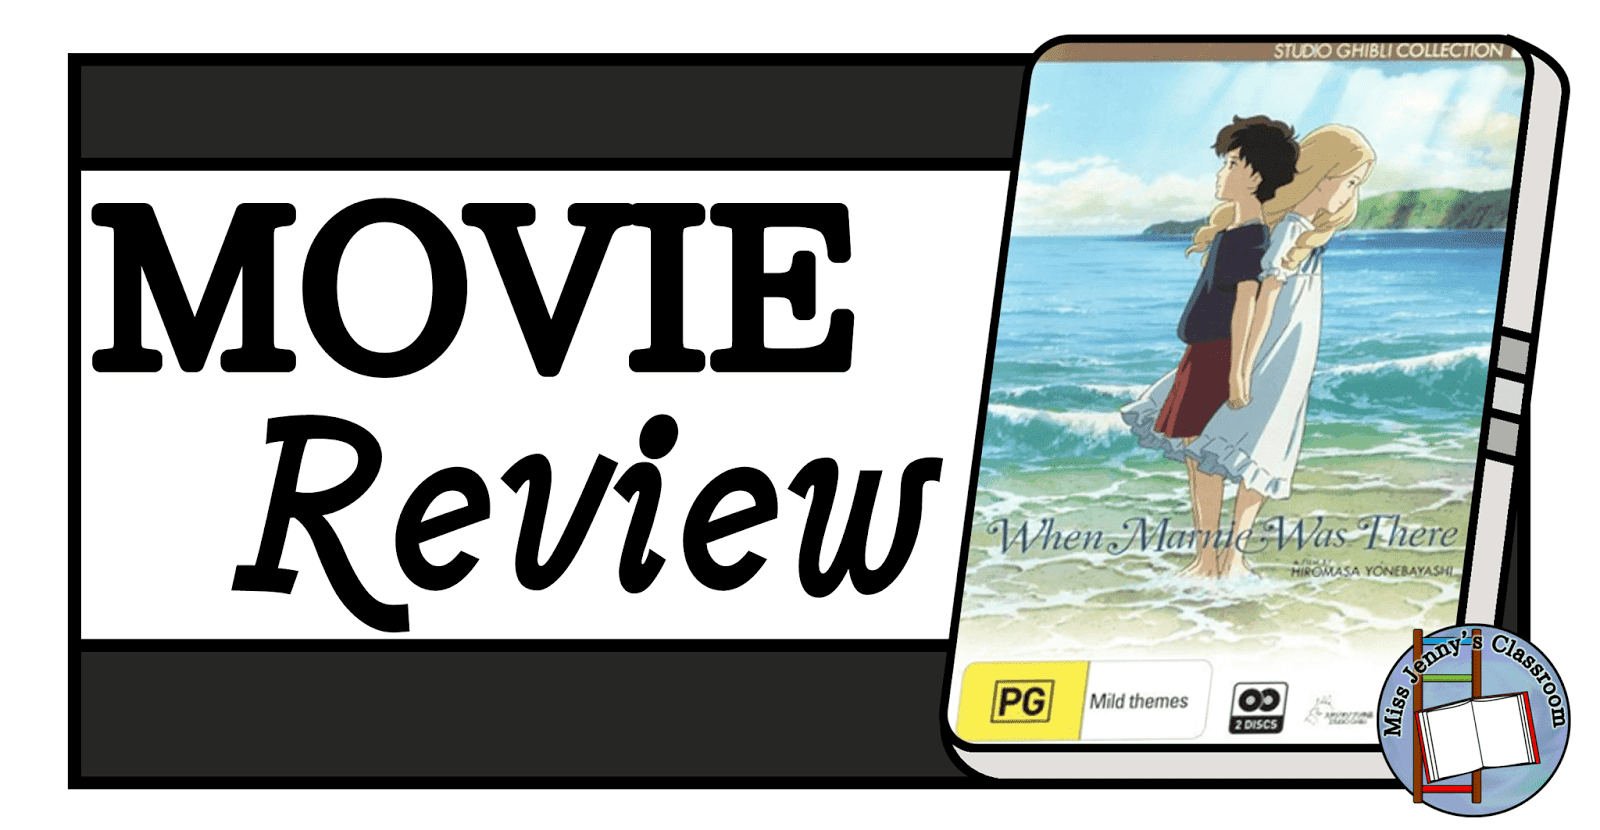 When Marnie Was There: Movie Review